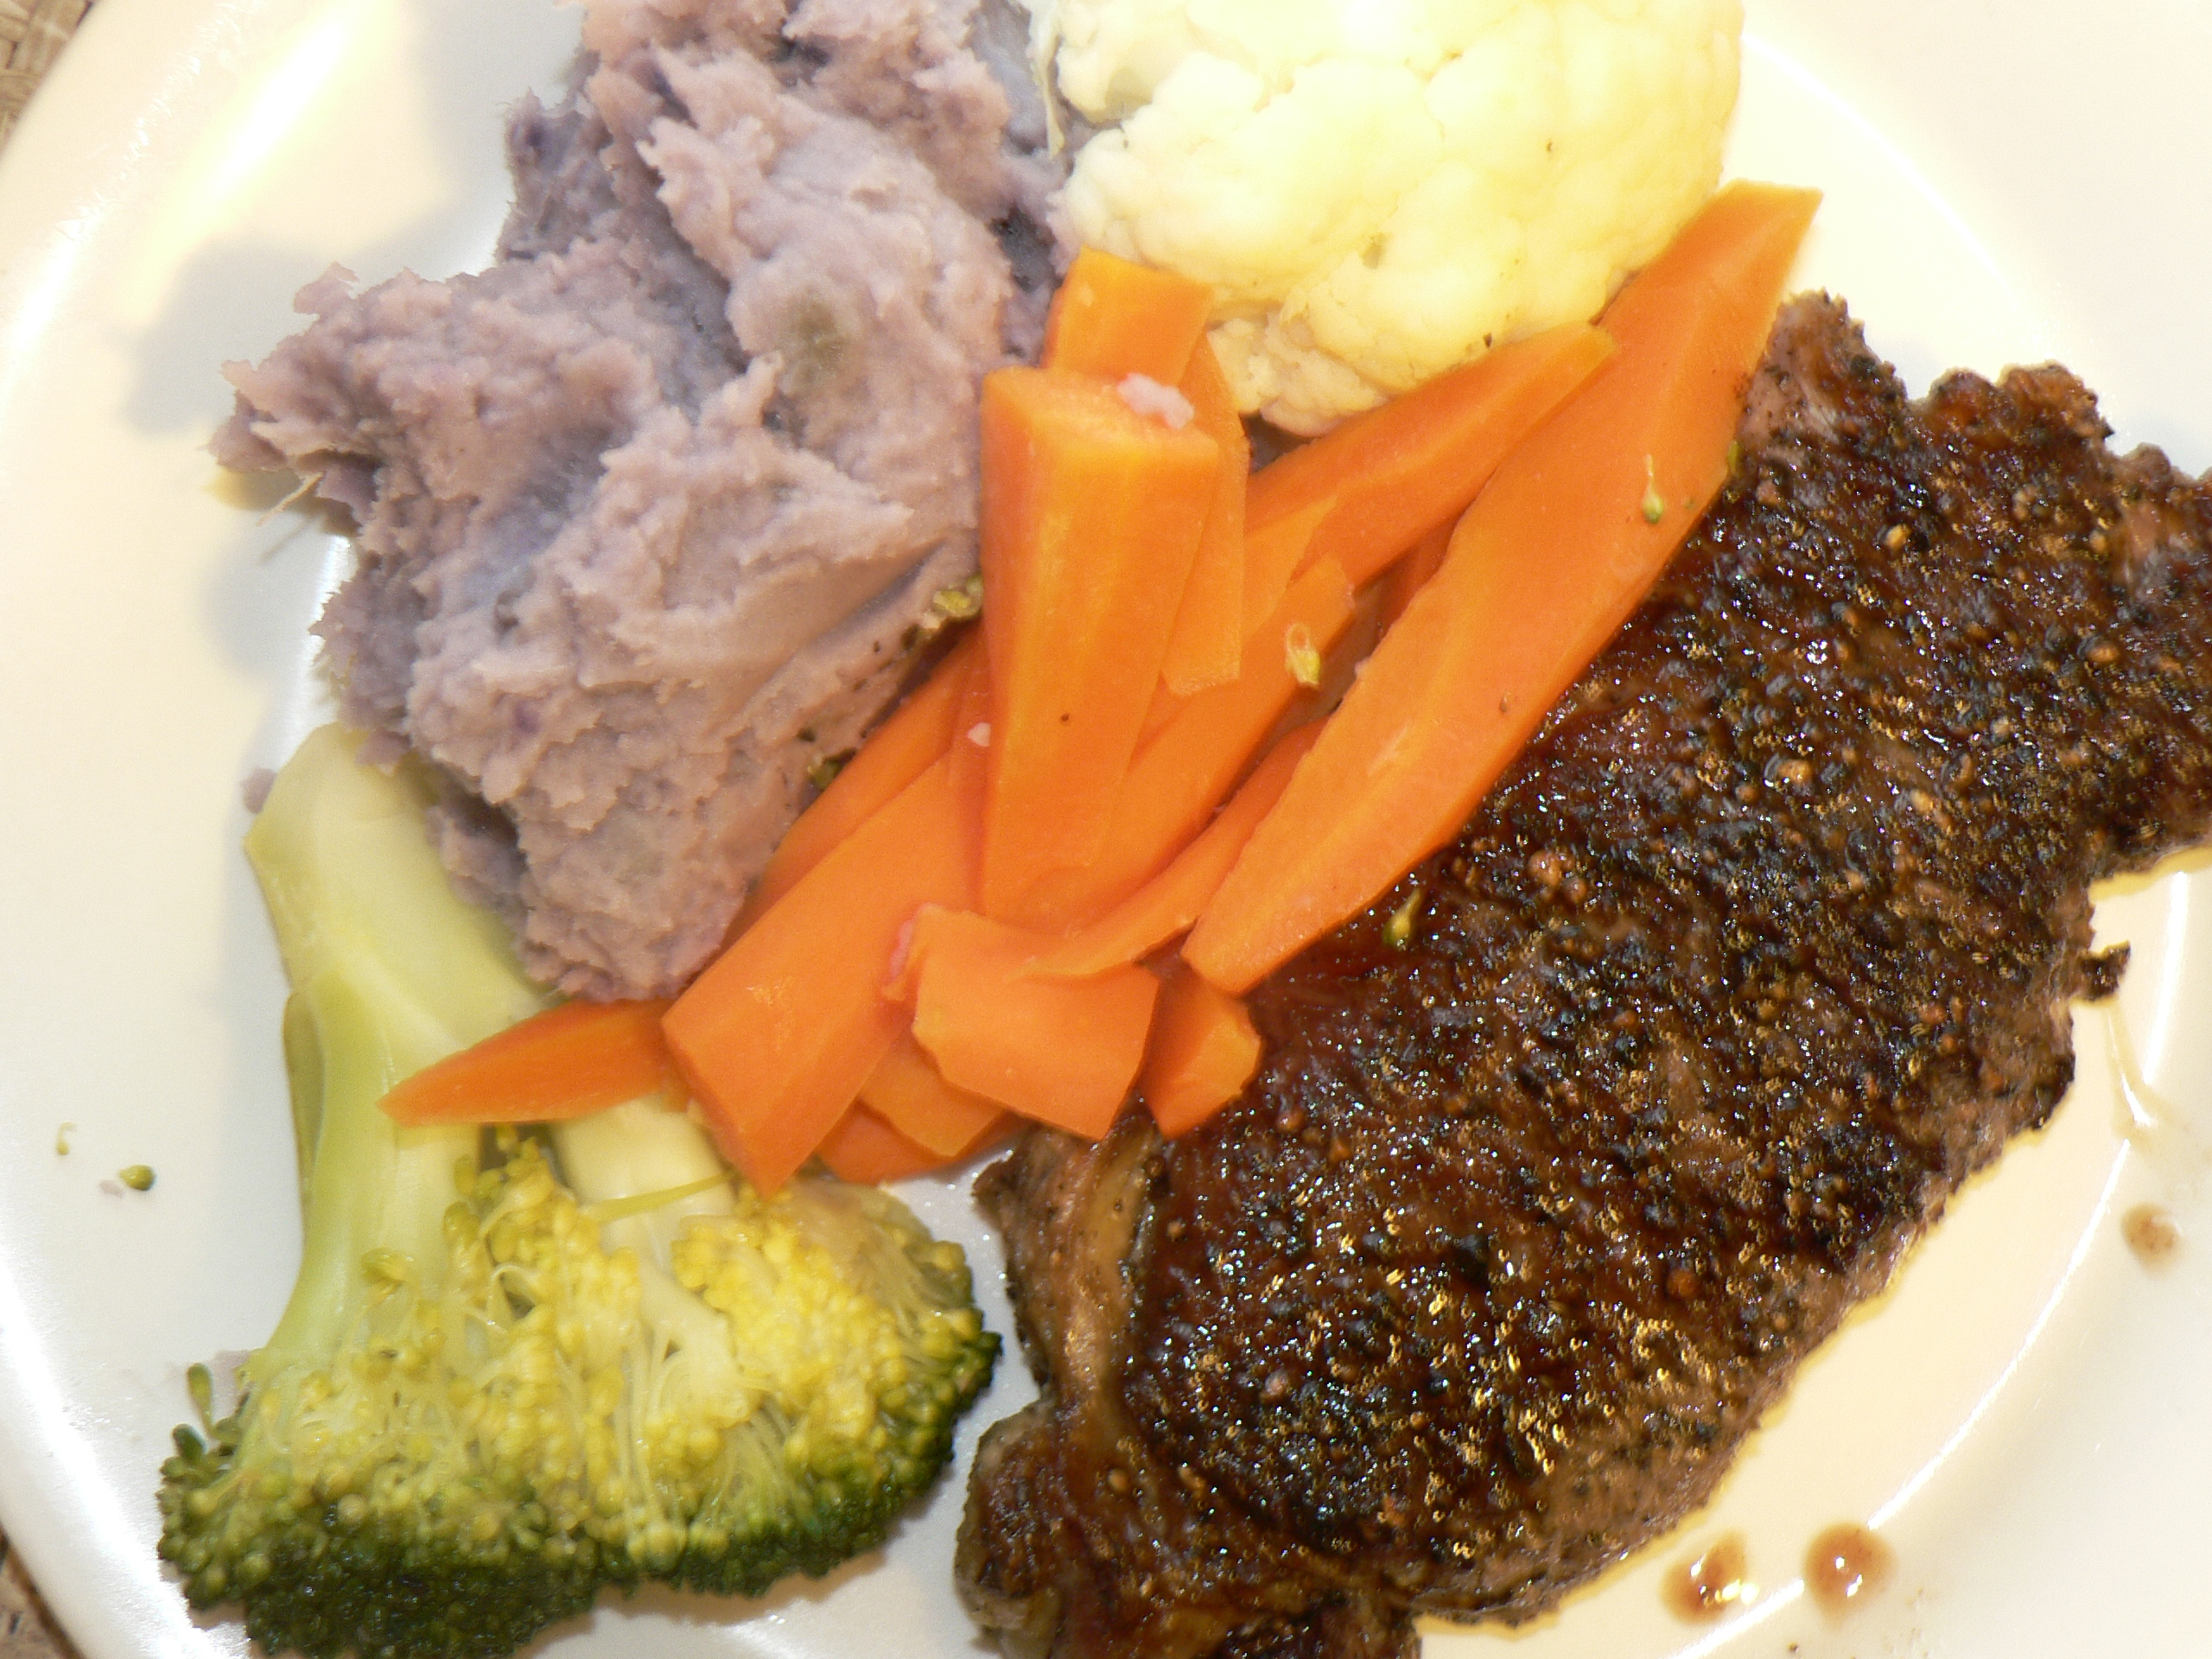 brisbane australia :: Porterhouse steak dinner with Purple sweet mashed potato!